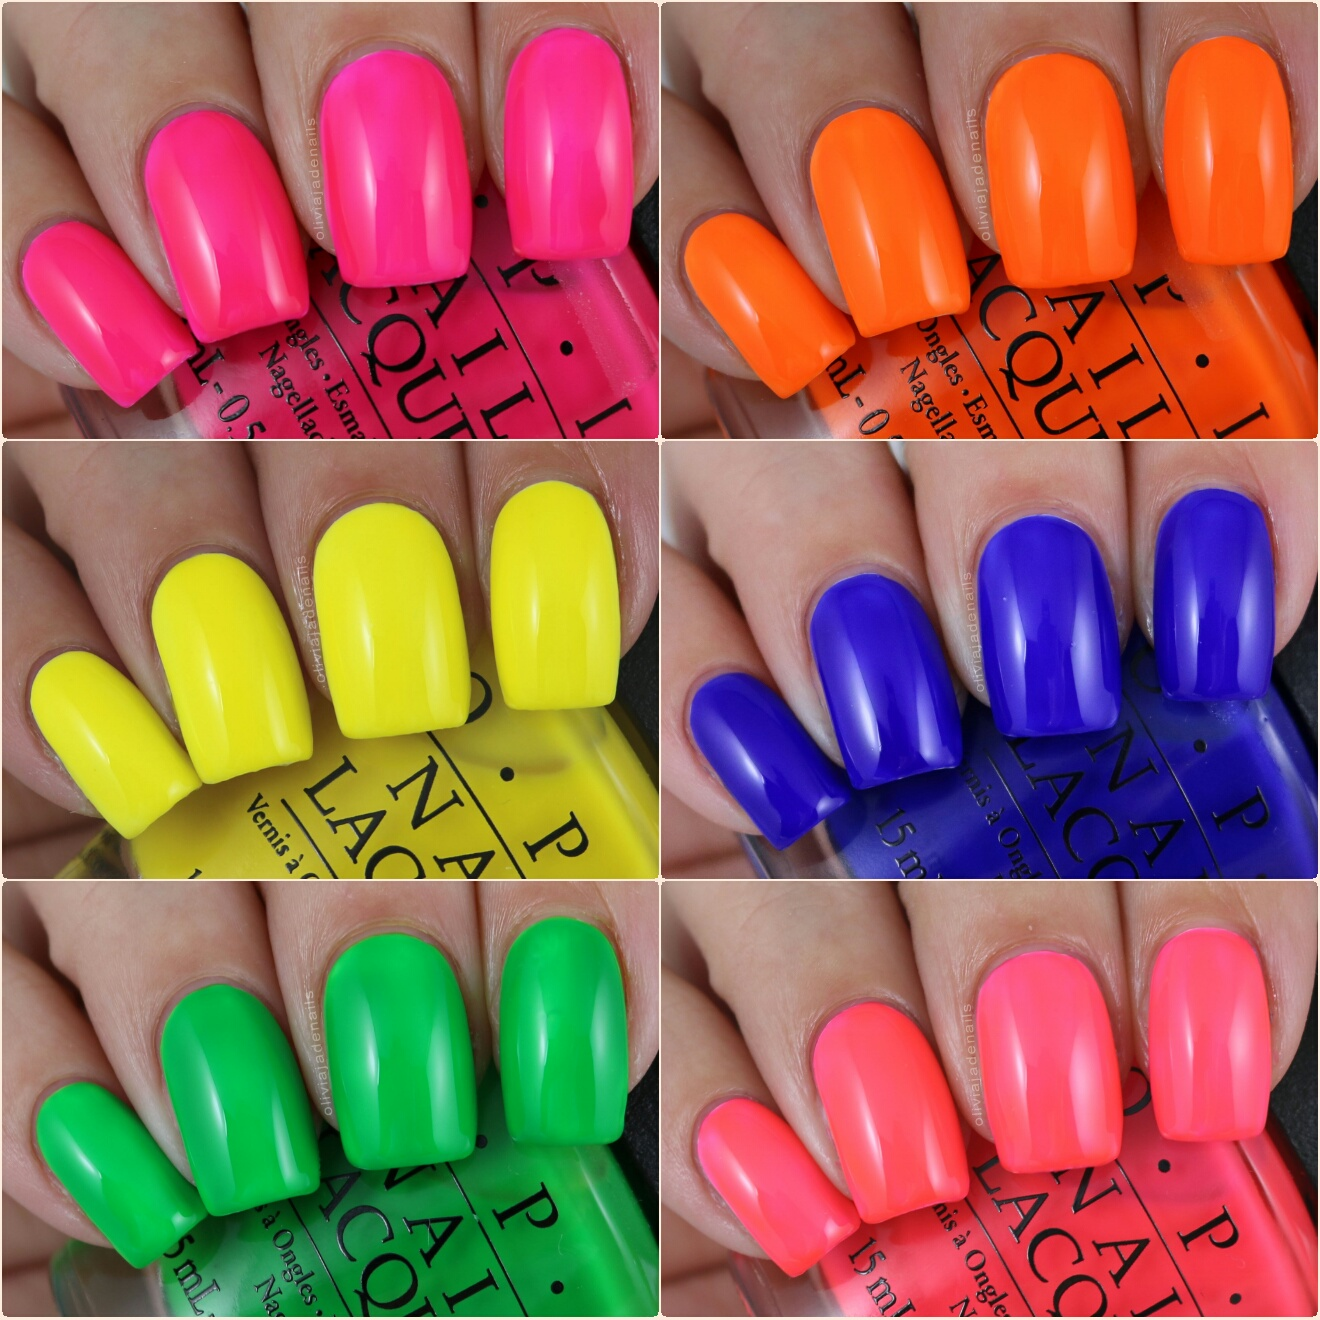 Olivia Jade Nails: OPI Tru Neons Collection - Swatches & Review